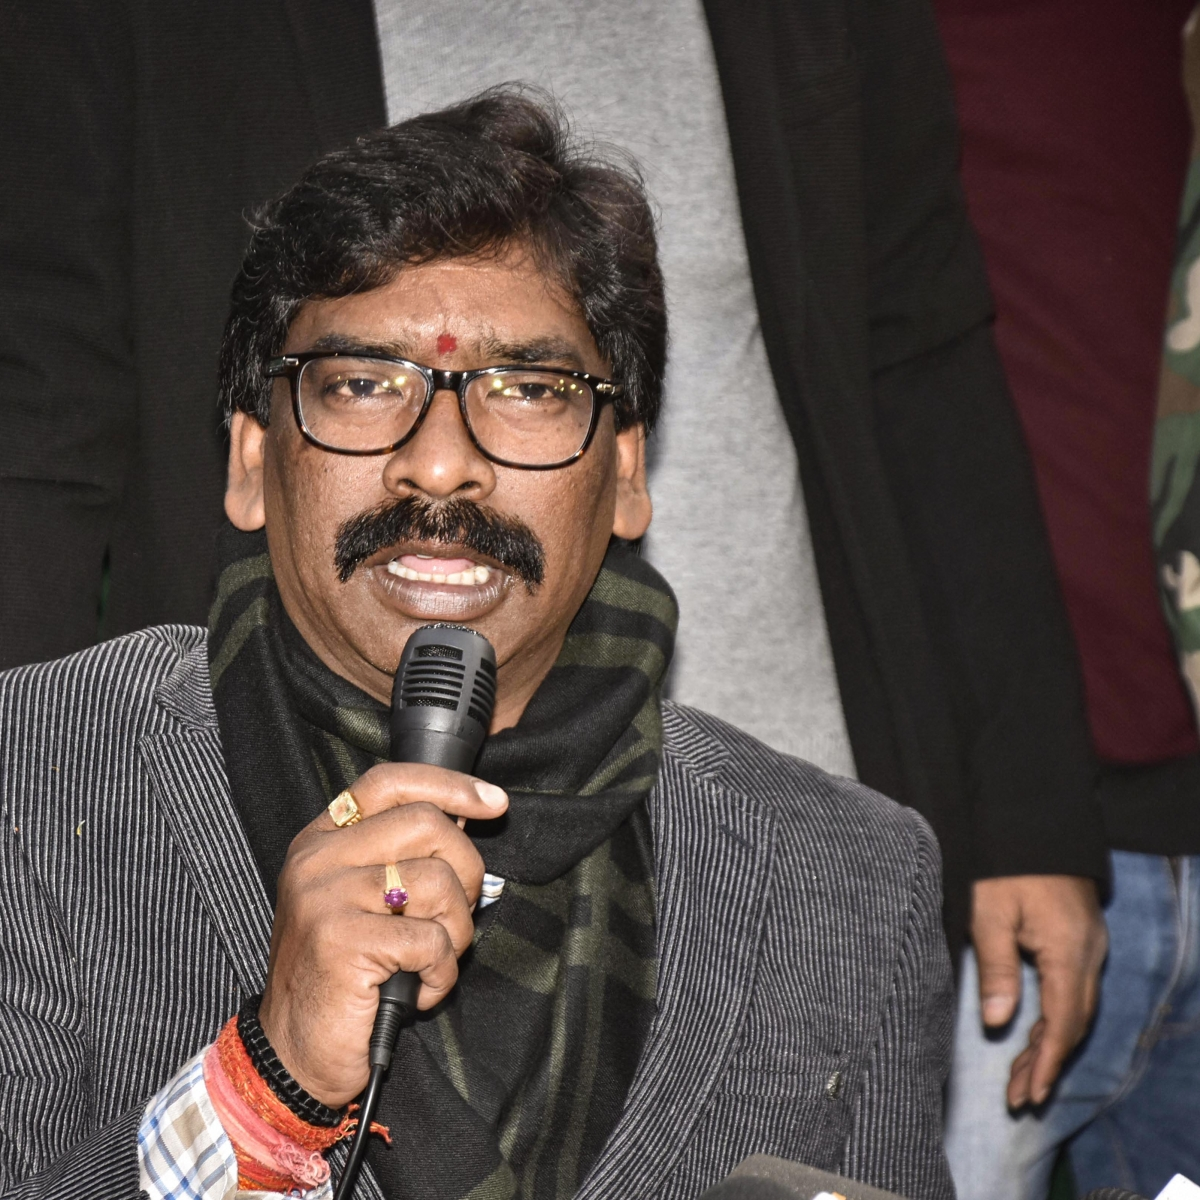 Coronavirus in Jharkhand: CM Hemant Soren goes into home quarantine as MLA tests positive